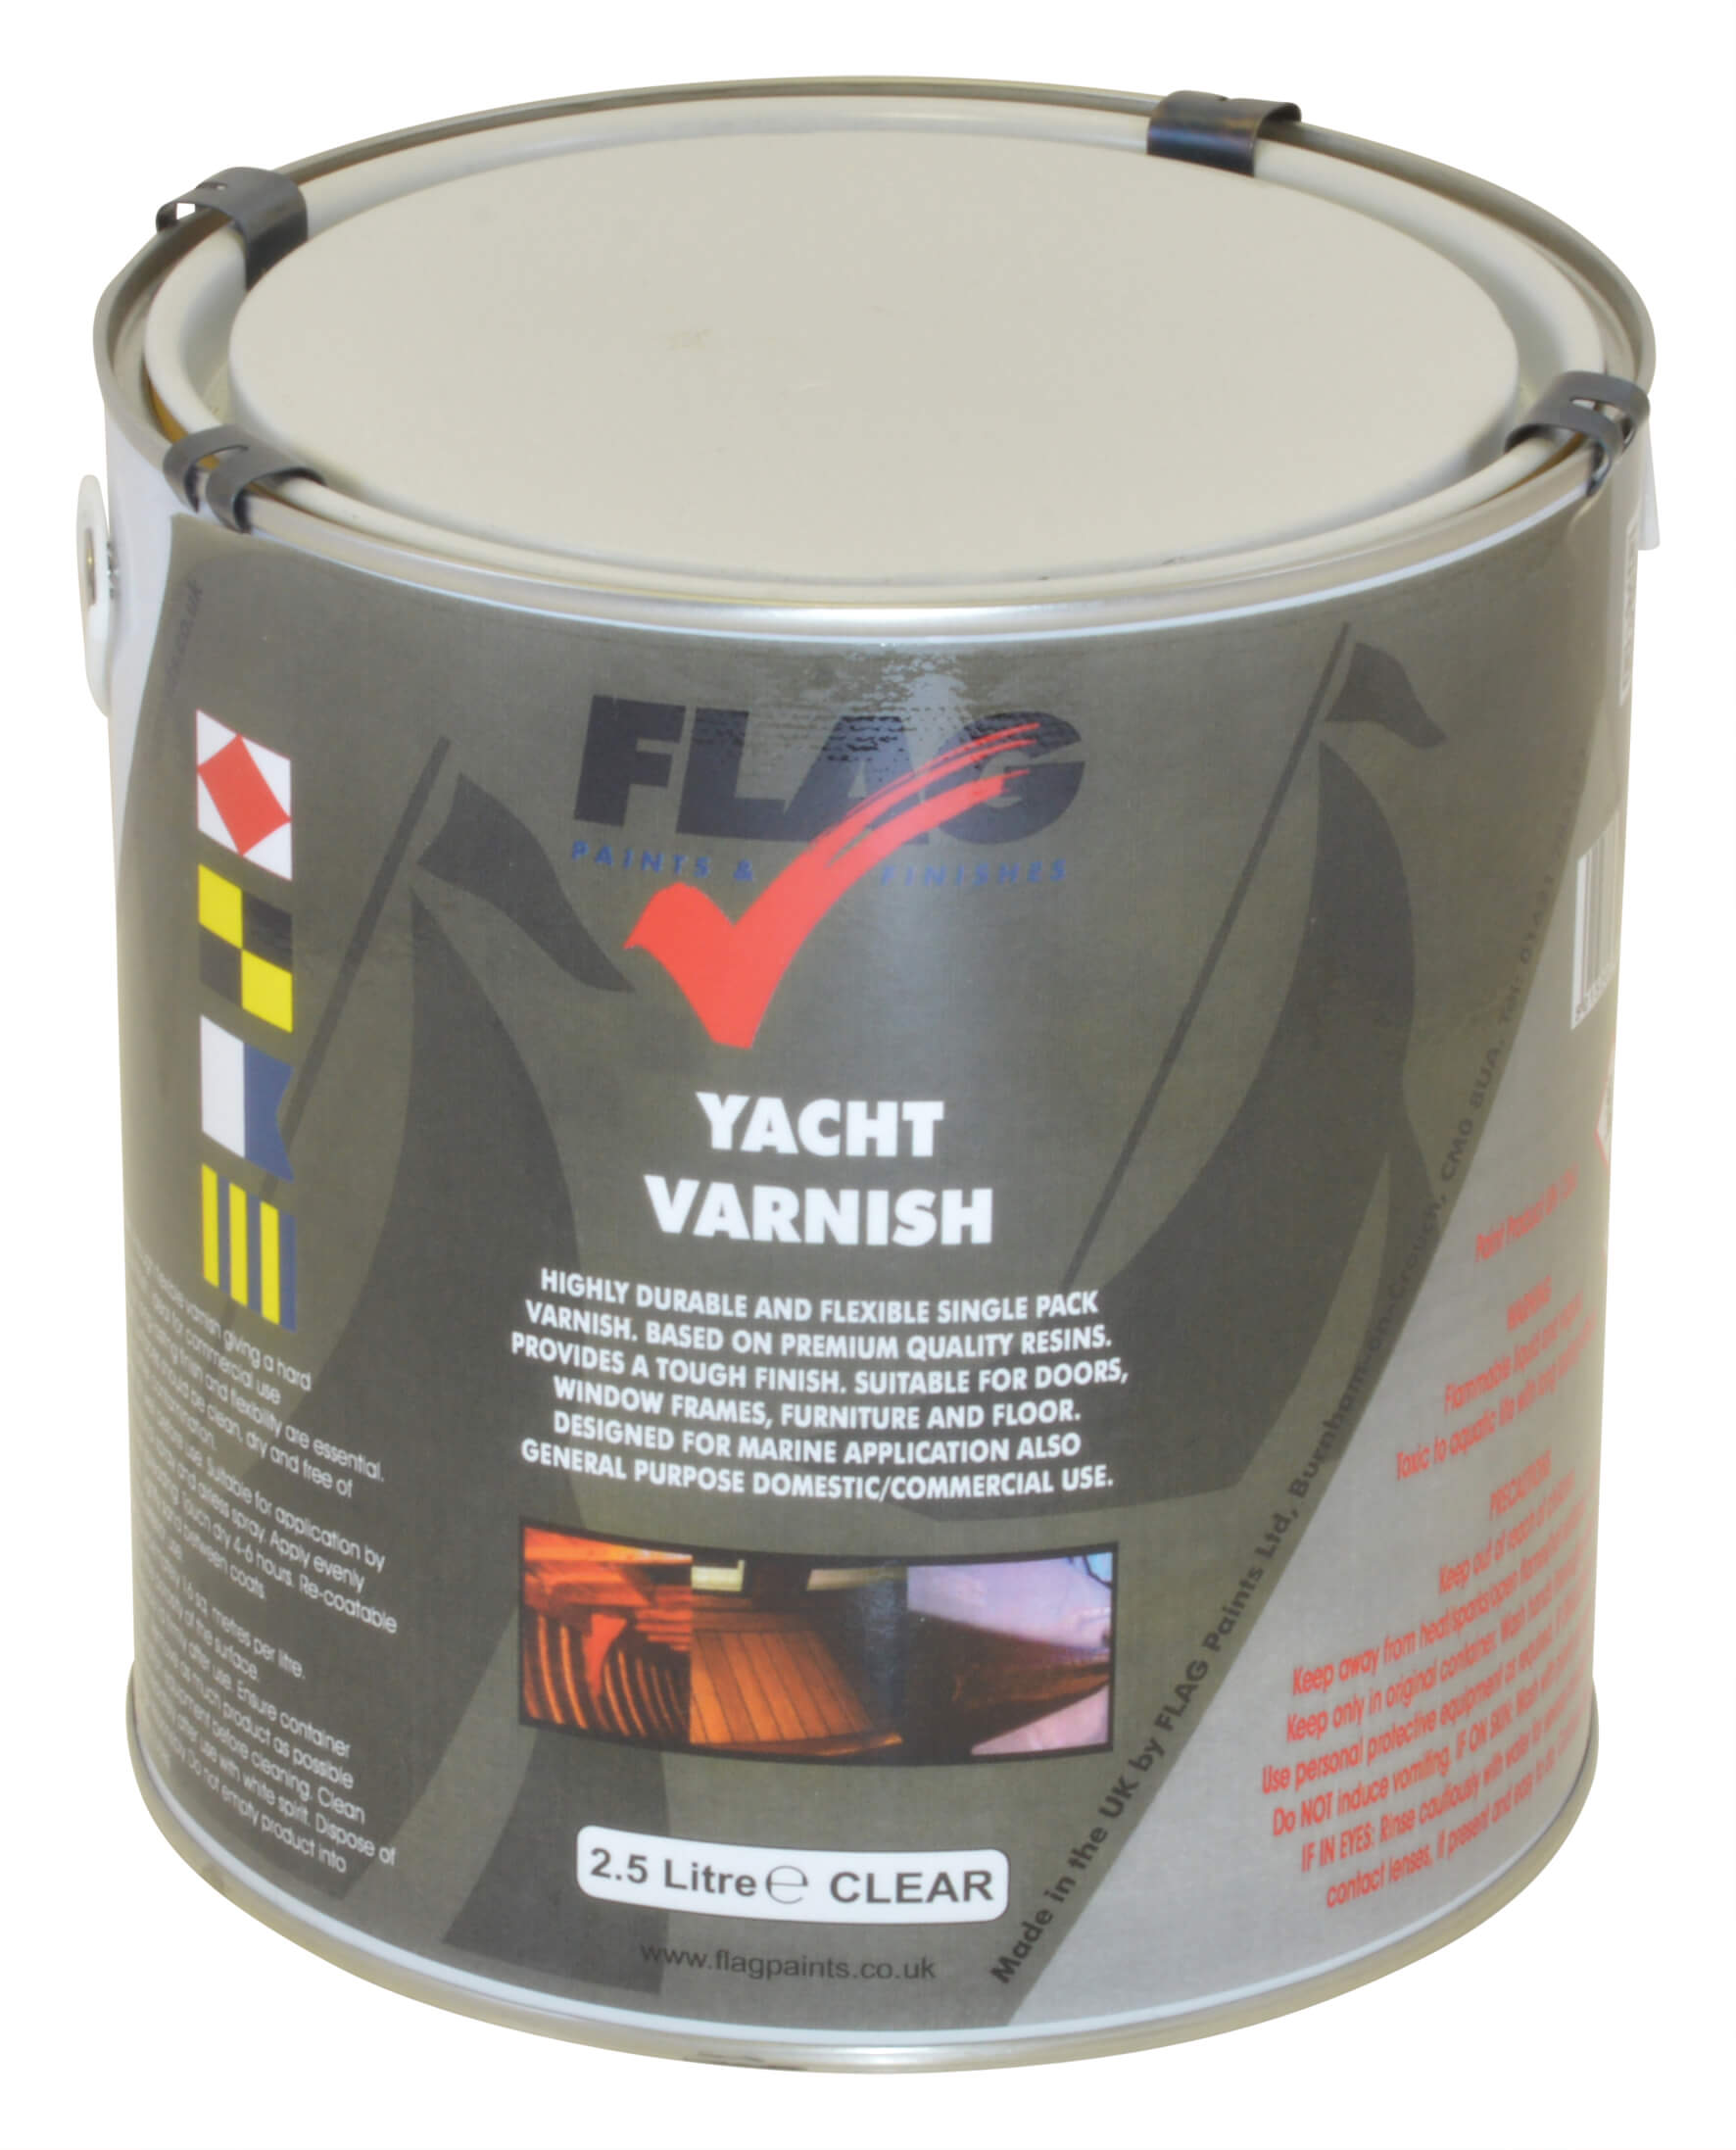 Yacht Varnish - 2.5 Litre